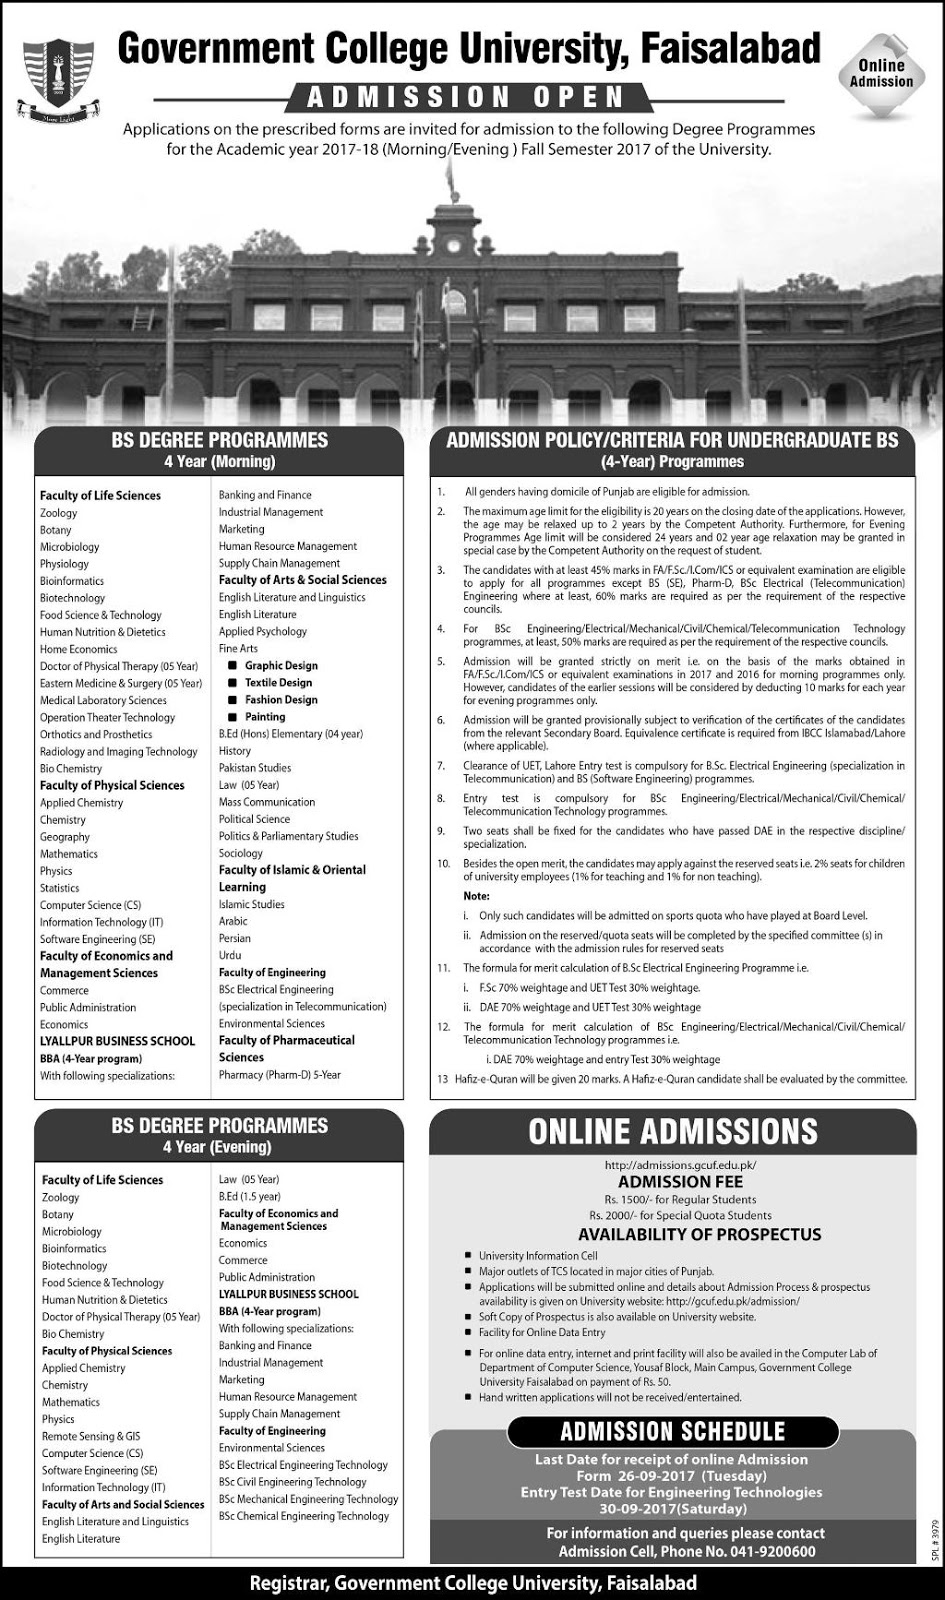 Admissions Open in Govt College University GCU Faisalabad for BS - 2017